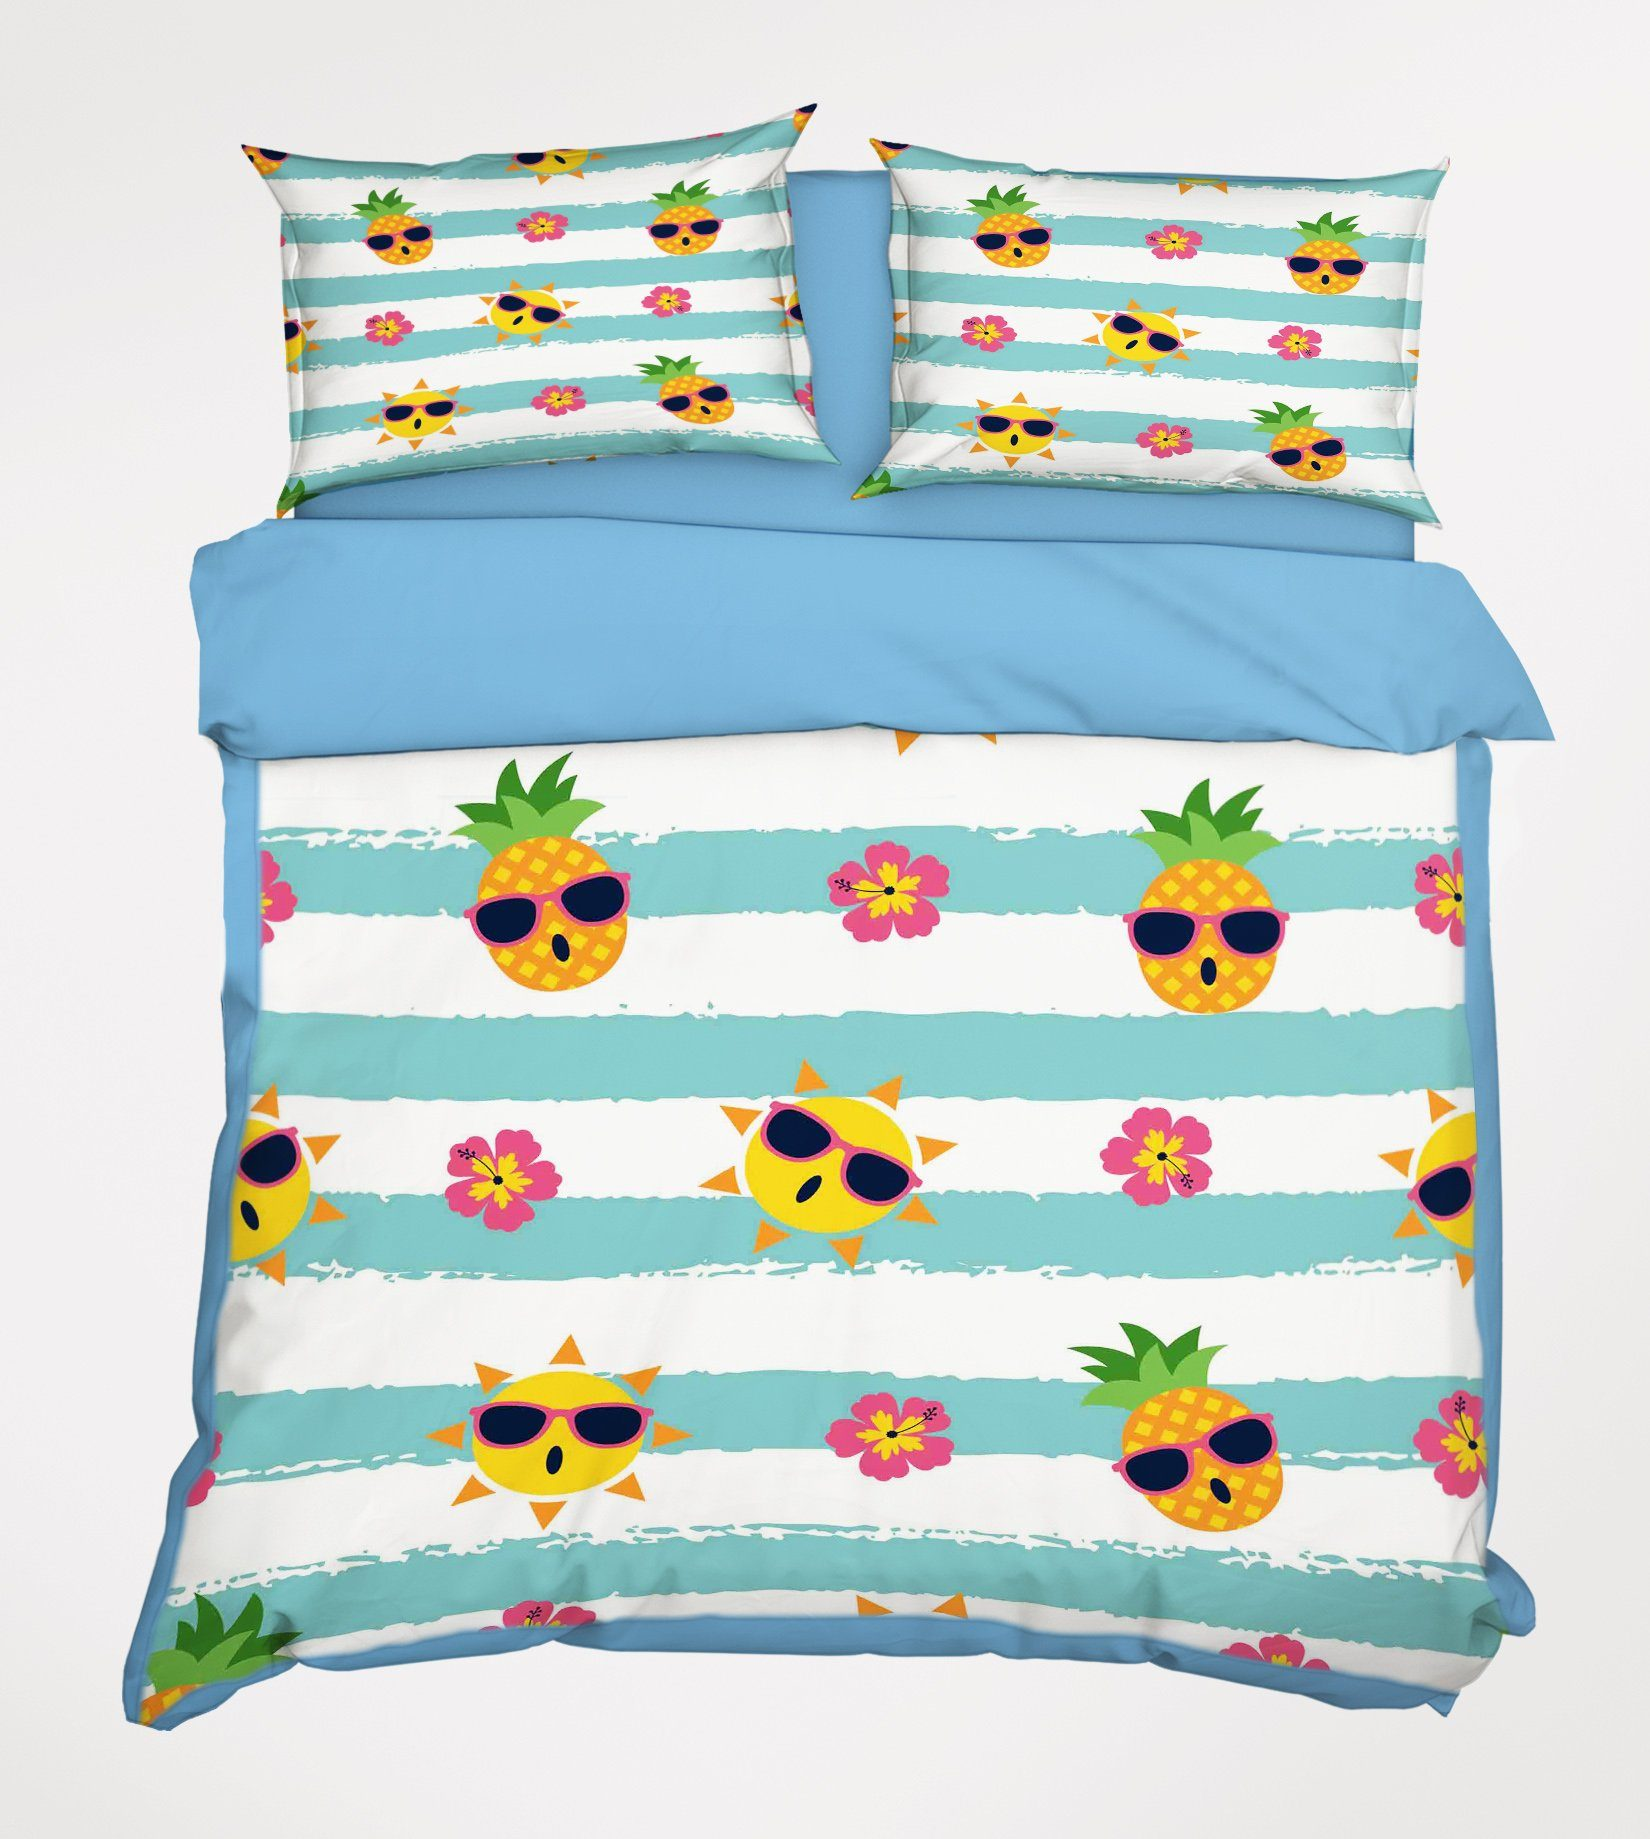 3D Small Pineapple 007 Bed Pillowcases Quilt Wallpaper AJ Wallpaper